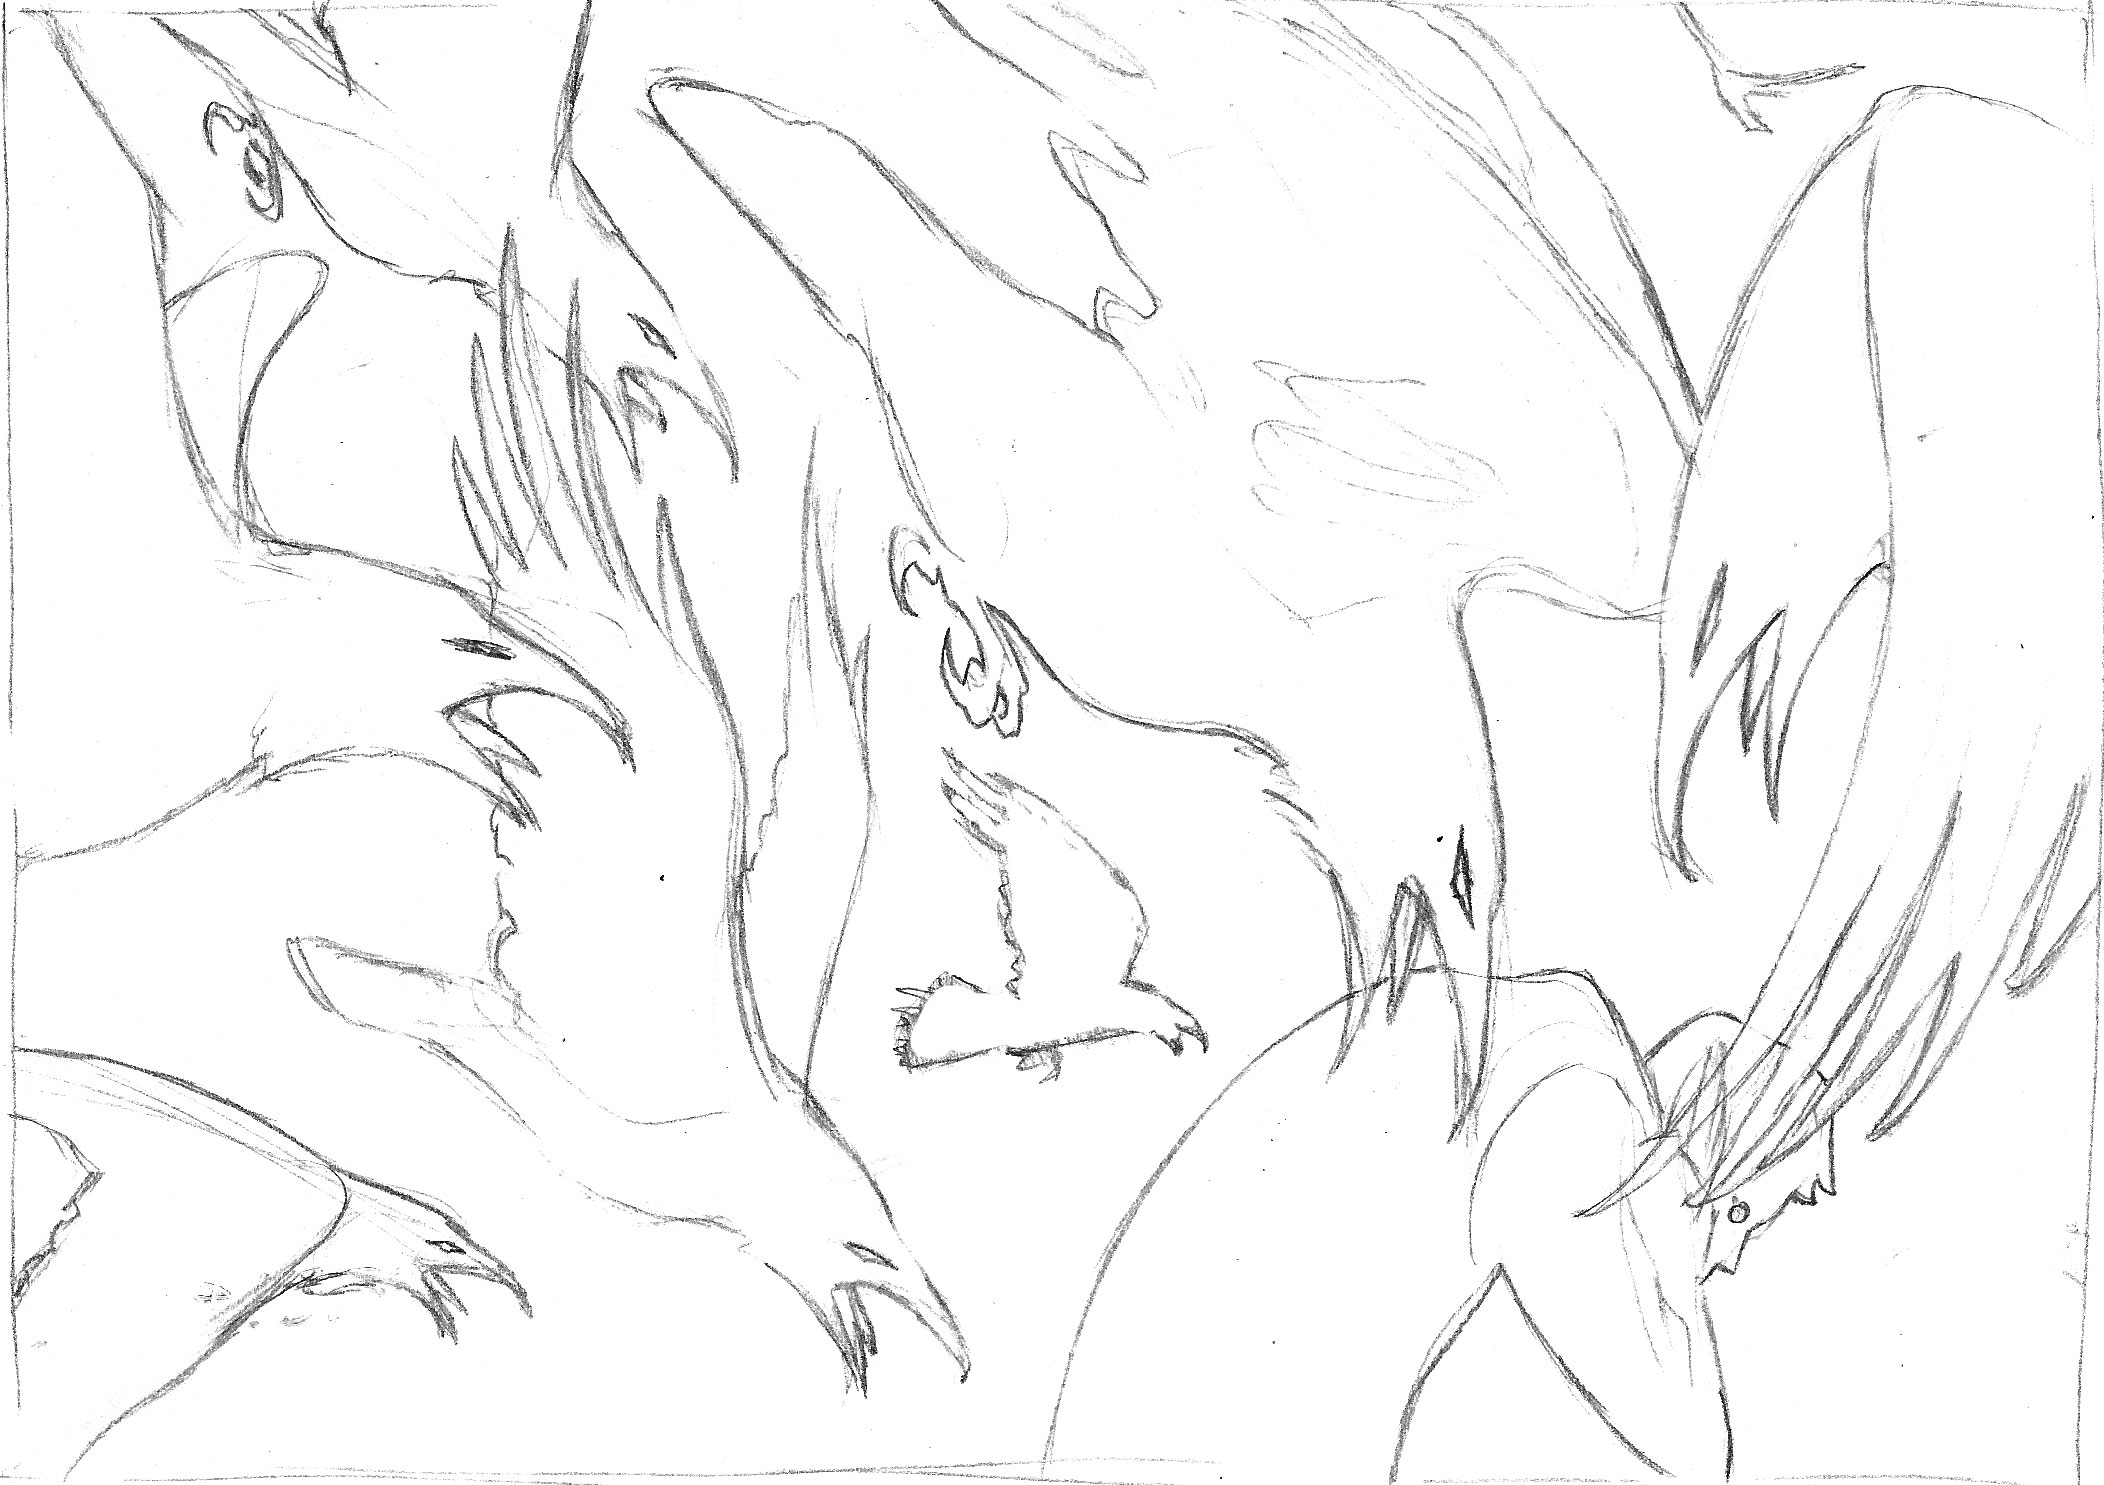 Scanning the drawing into Photoshop, I block in the shapes to better realize the final look.